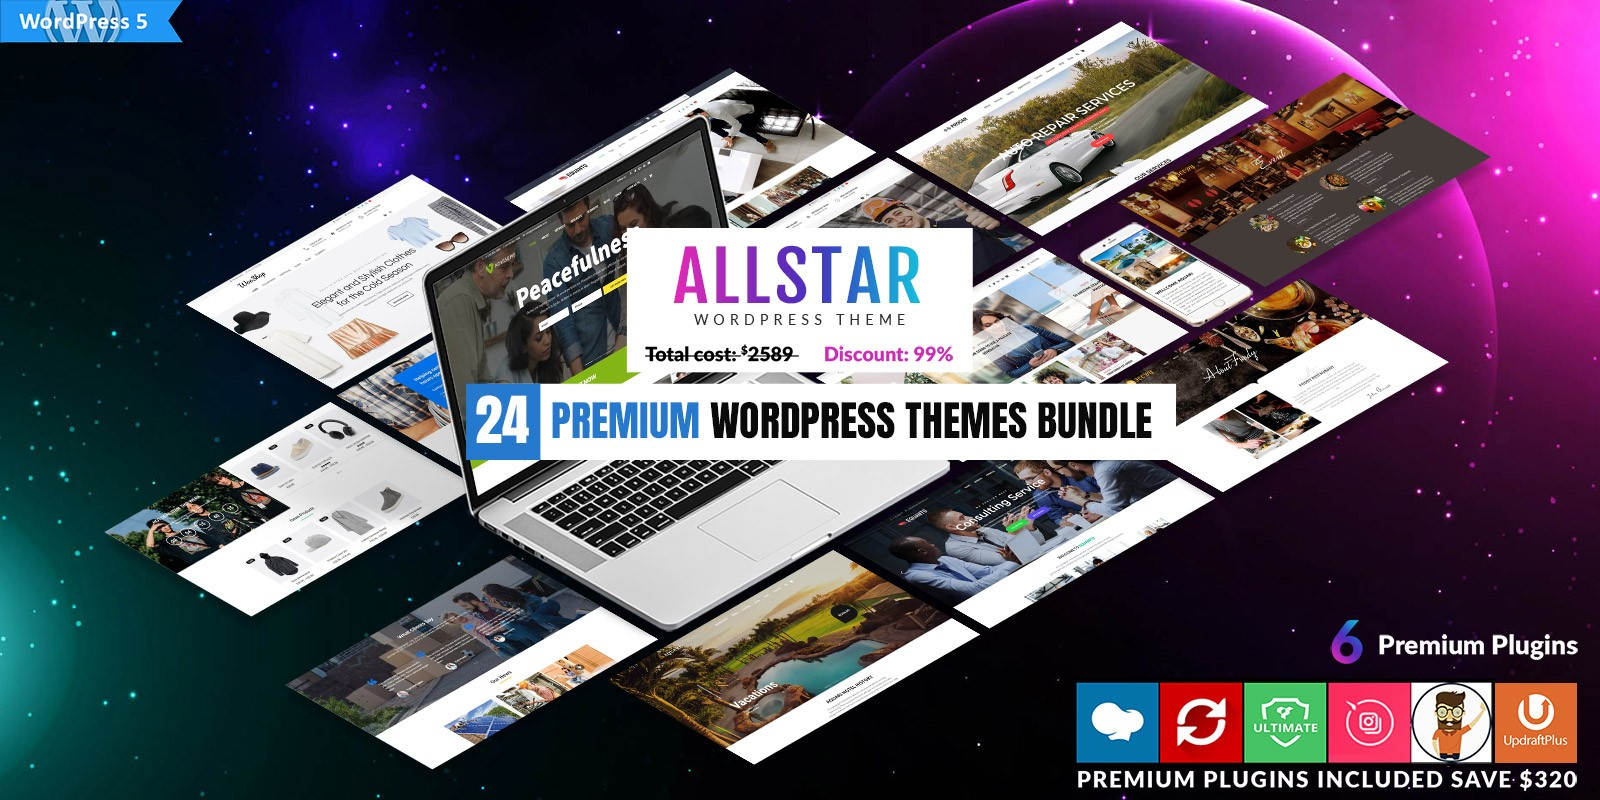 24 Premium WordPress Themes Bundle